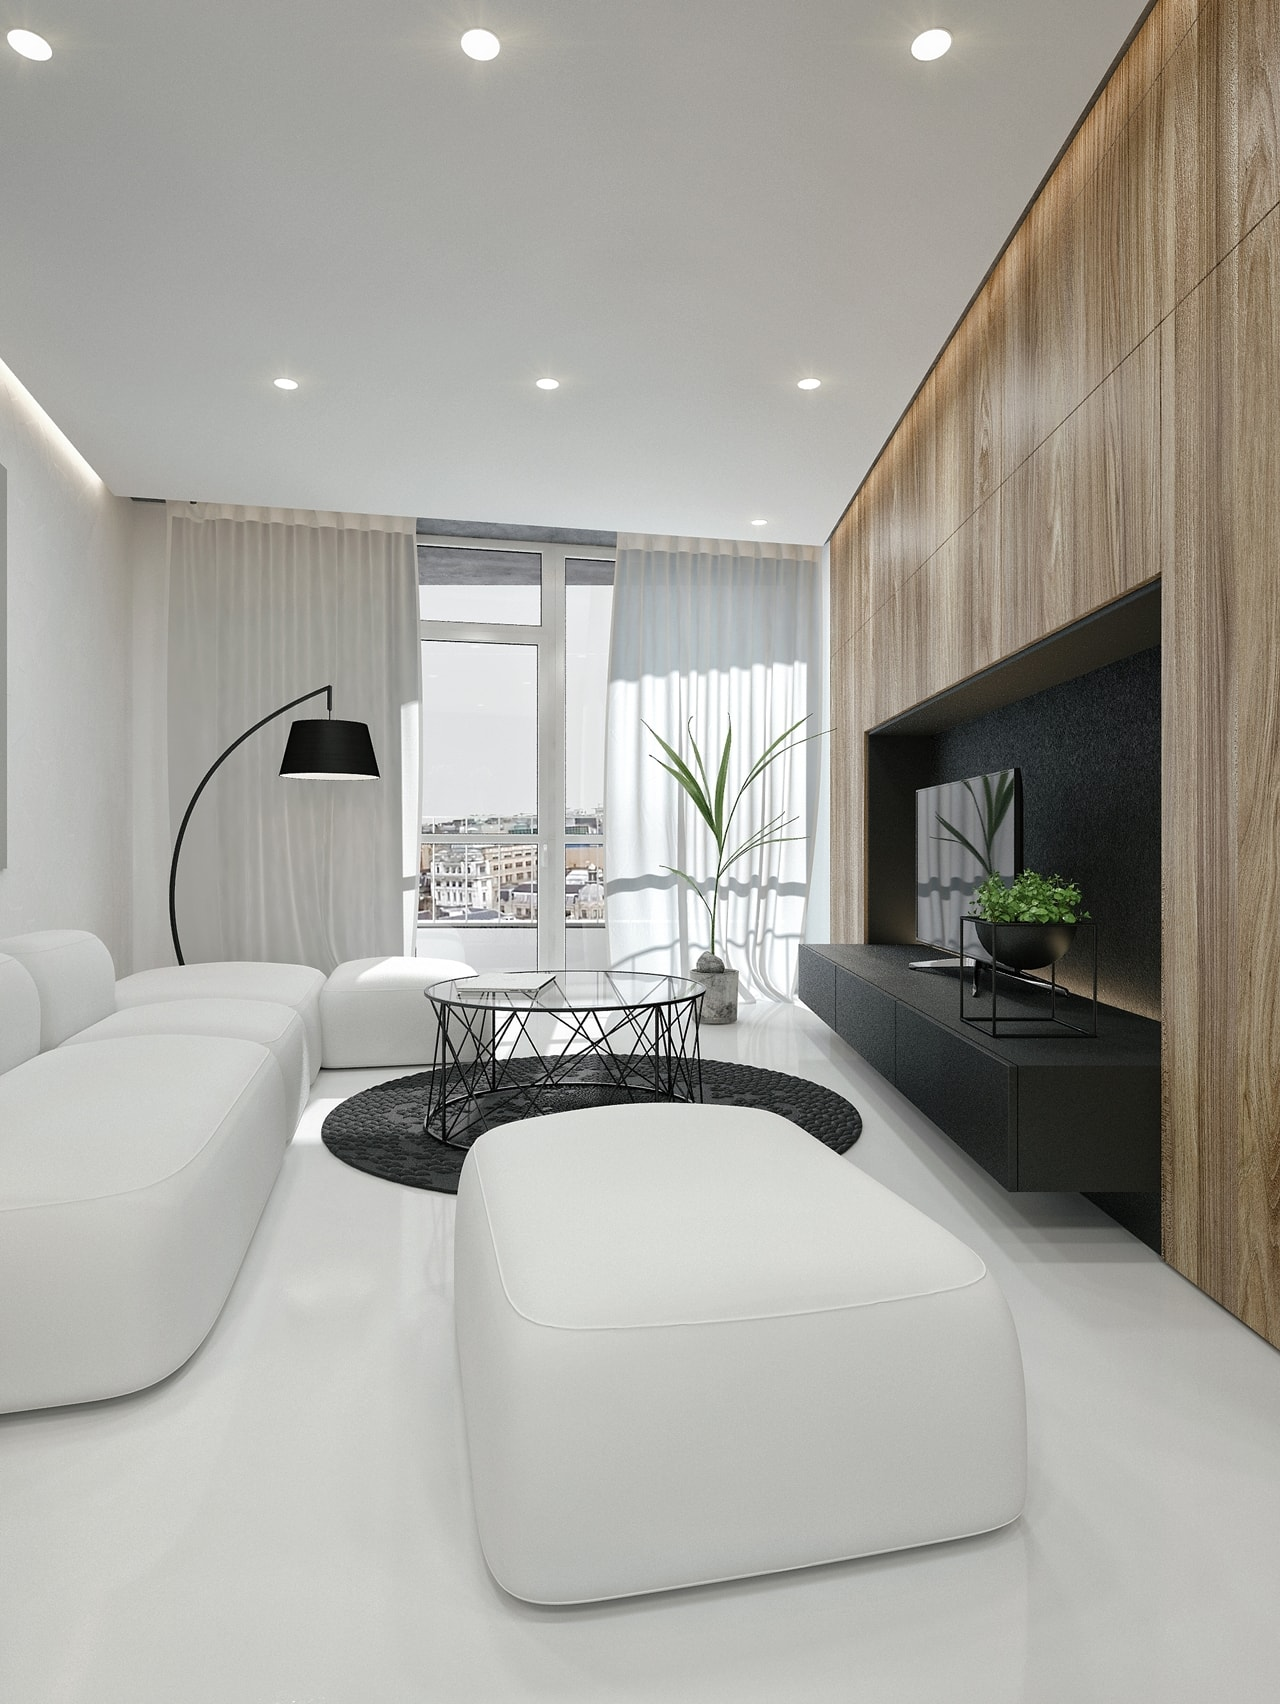 Black and white interior design ideas modern apartment by id white architecture beast Modern apartment interior design